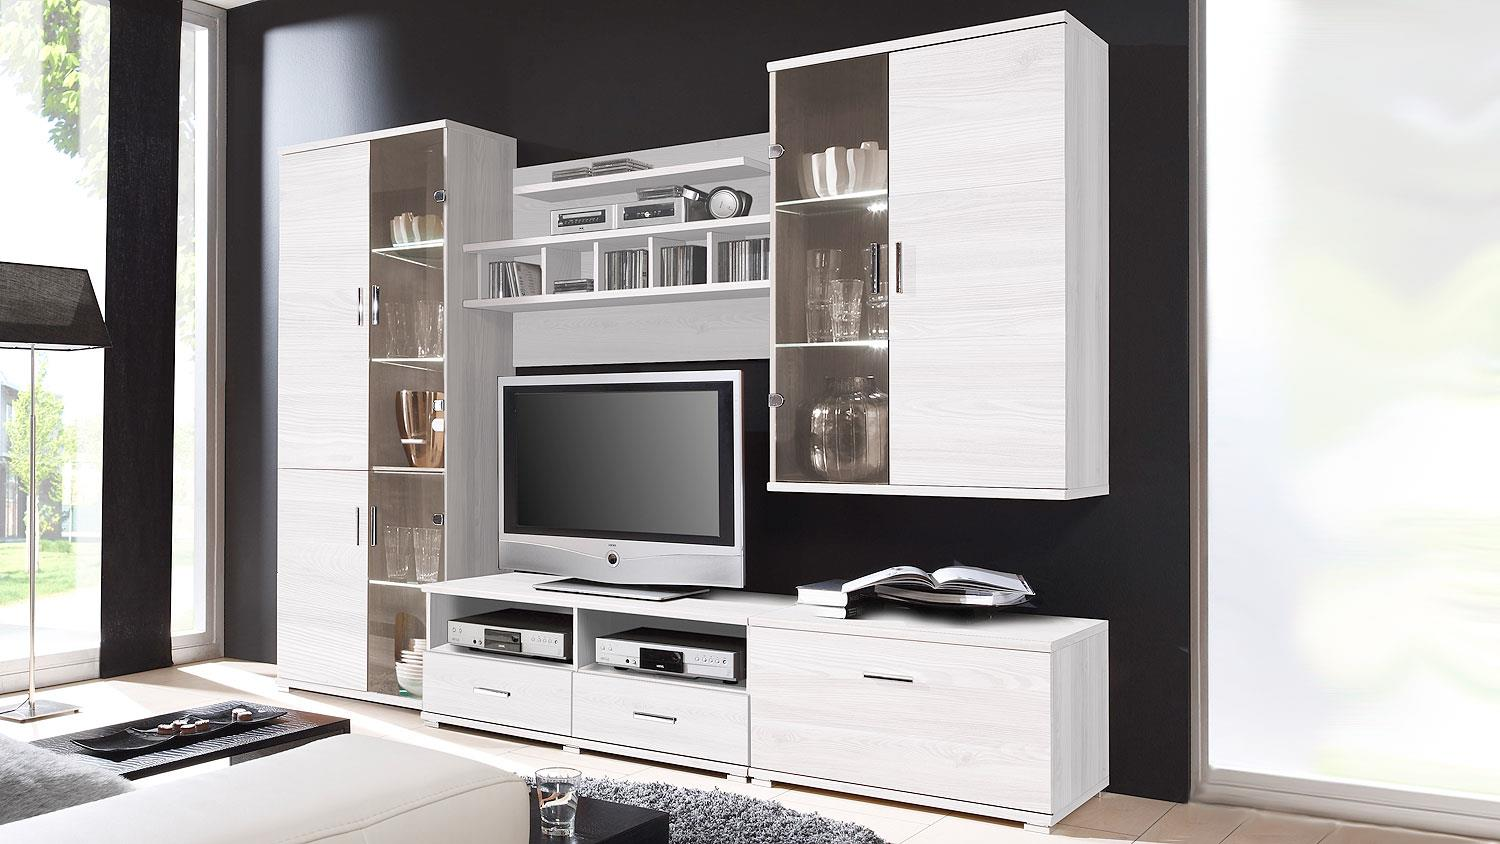 wohnwand sibiu l rche anbauwand libero mit led. Black Bedroom Furniture Sets. Home Design Ideas